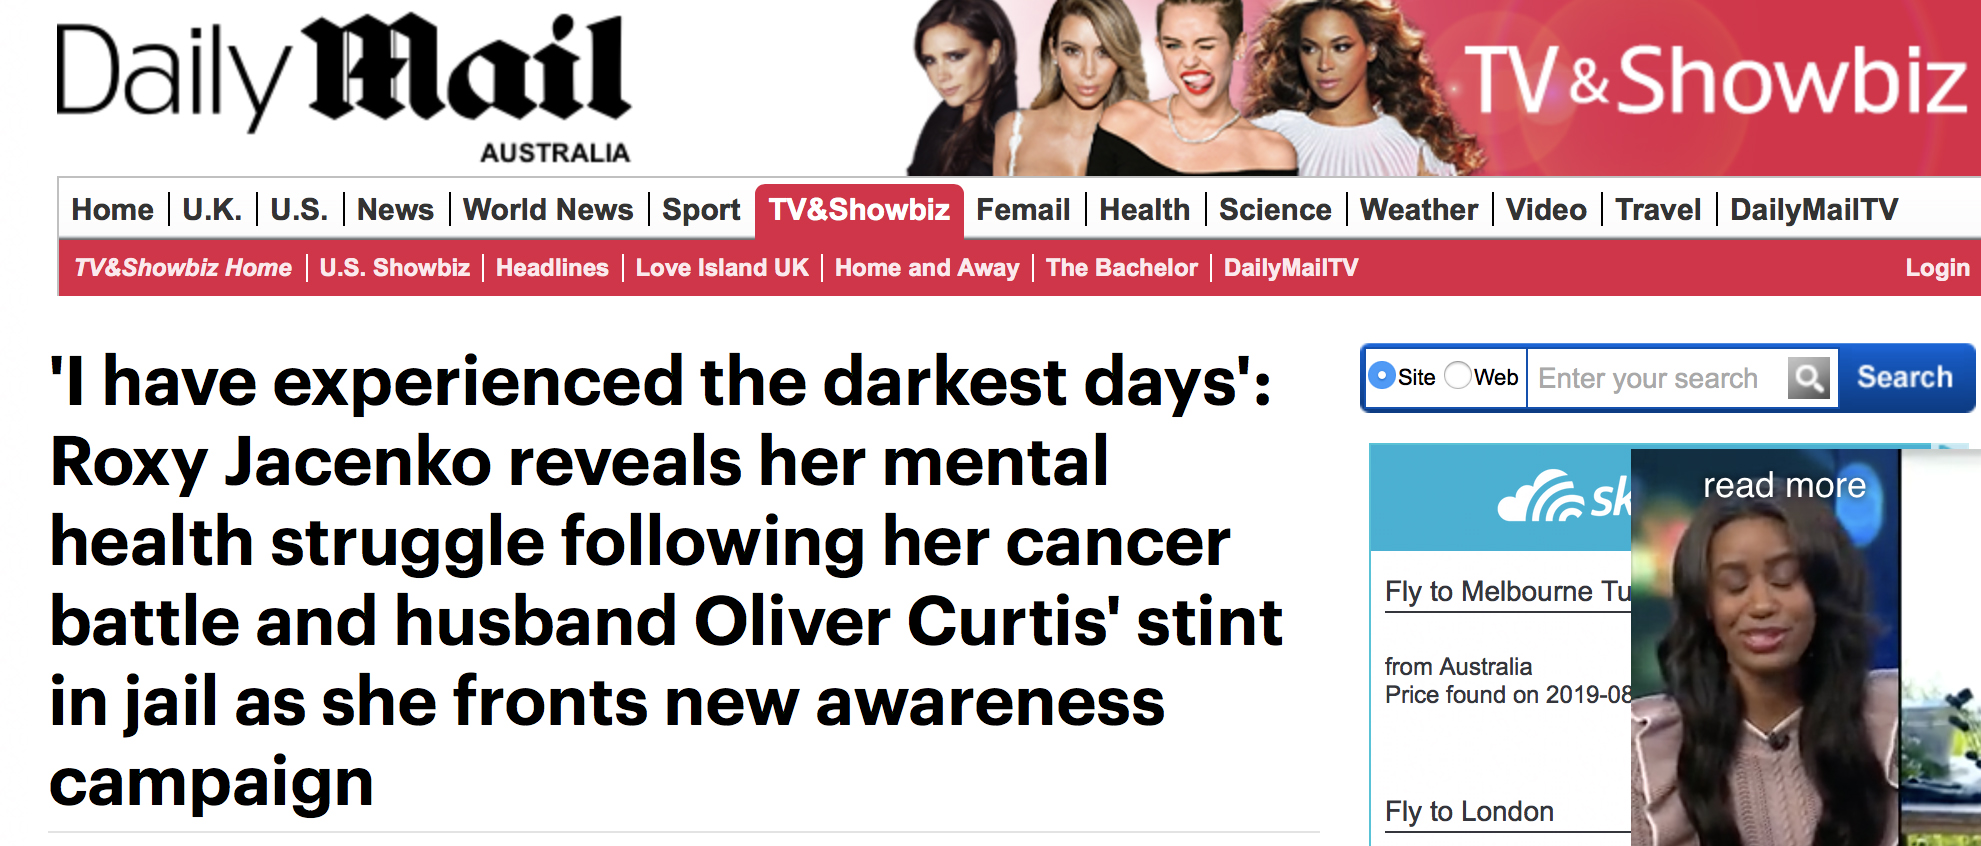 Daily Mail Australia - Roxy Jacenko reveals her mental health struggle as she fronts new awareness campaign.